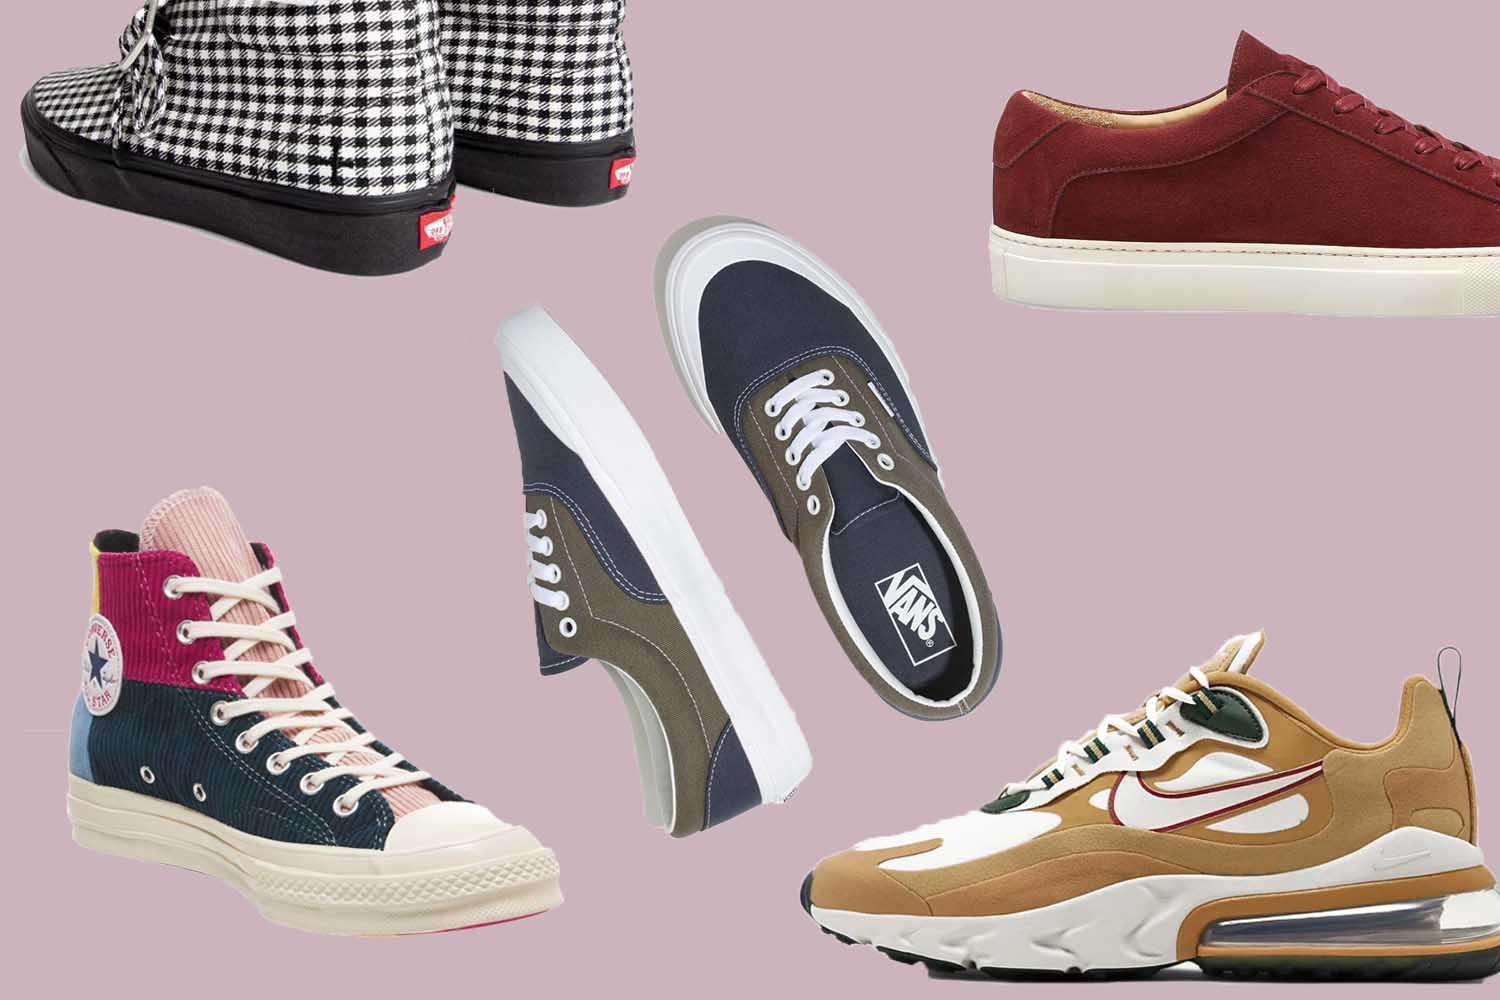 The best sneakers you can actually buy in 2019 | T3